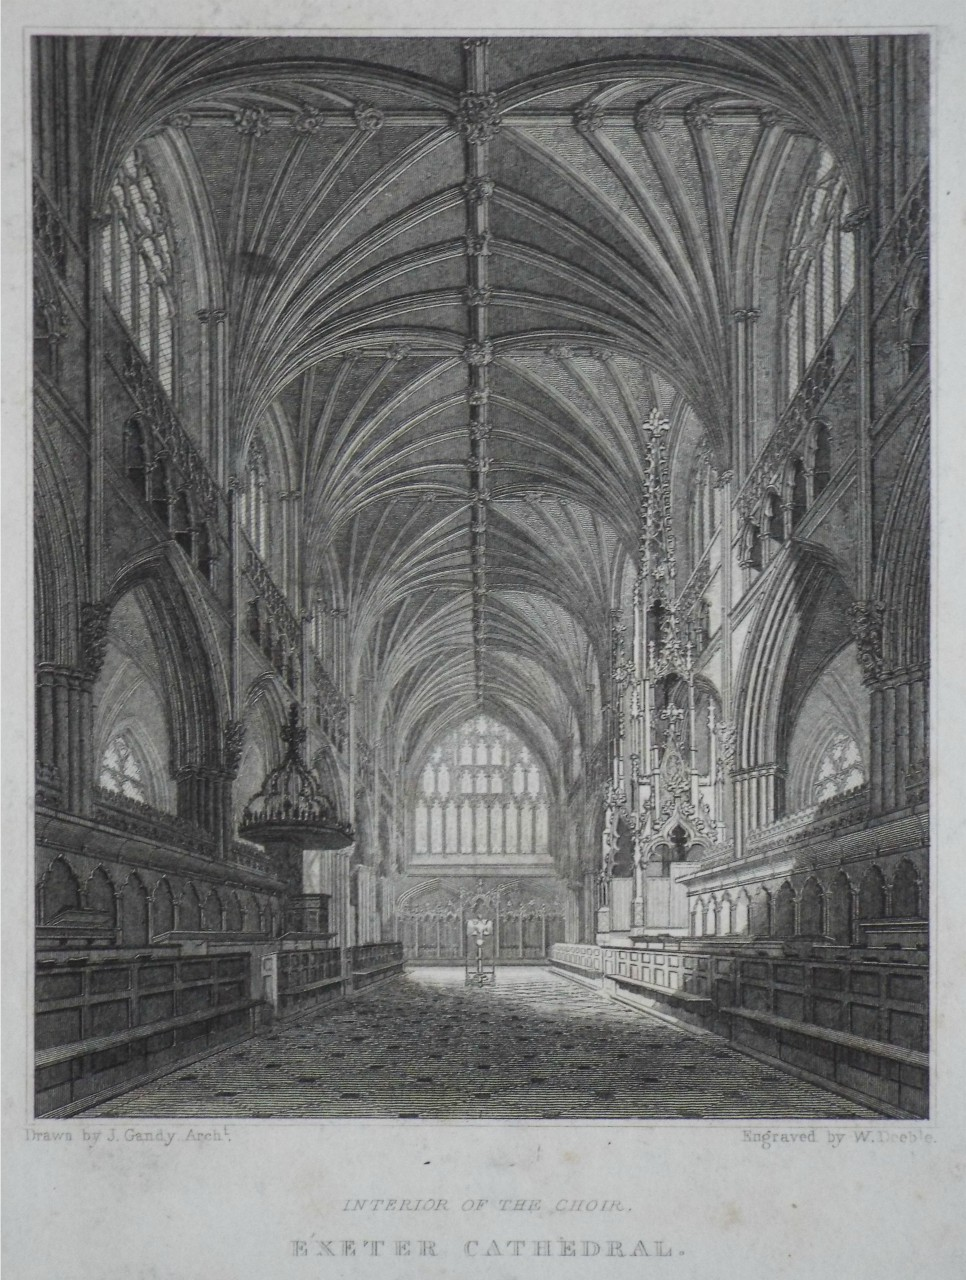 Print - Interior of the Choir, Exeter Cathedral. - Deeble